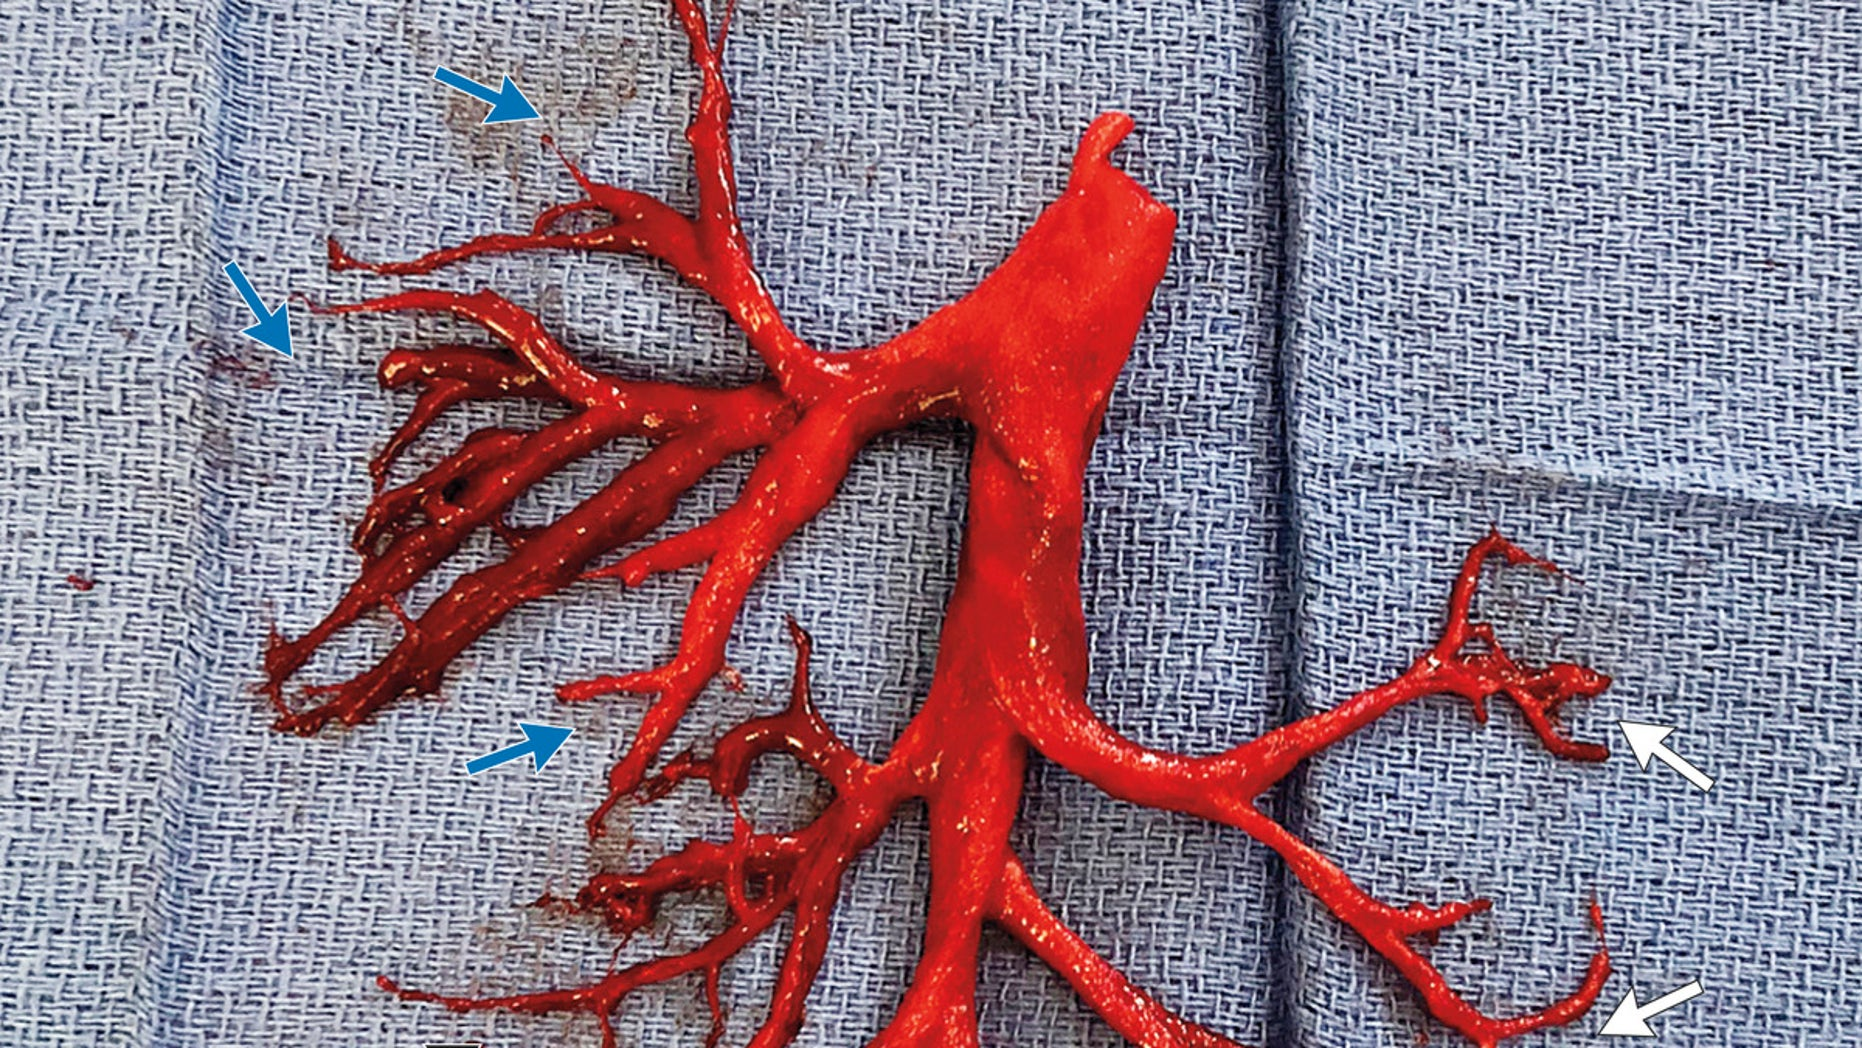 Check Out This Massive Intact Blood Clot Someone Coughed Up